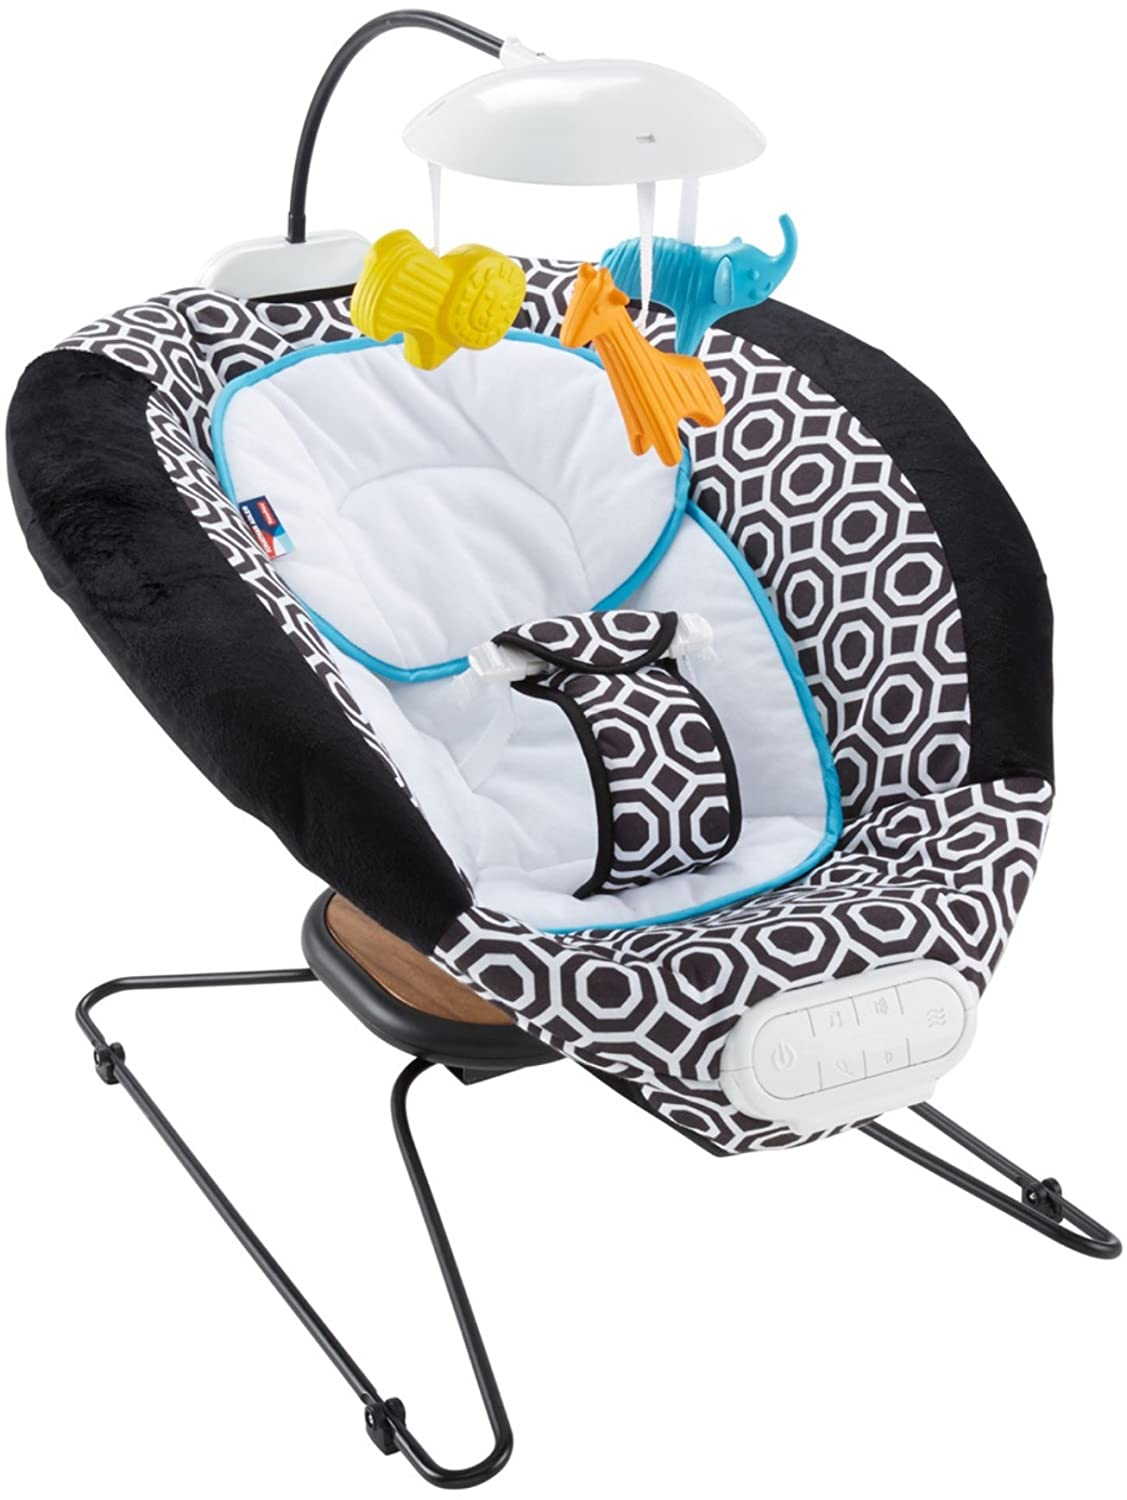 Fisher-Price Deluxe Rock 'n Play Sleeper by Jonathan Adler, Black/White DPN50